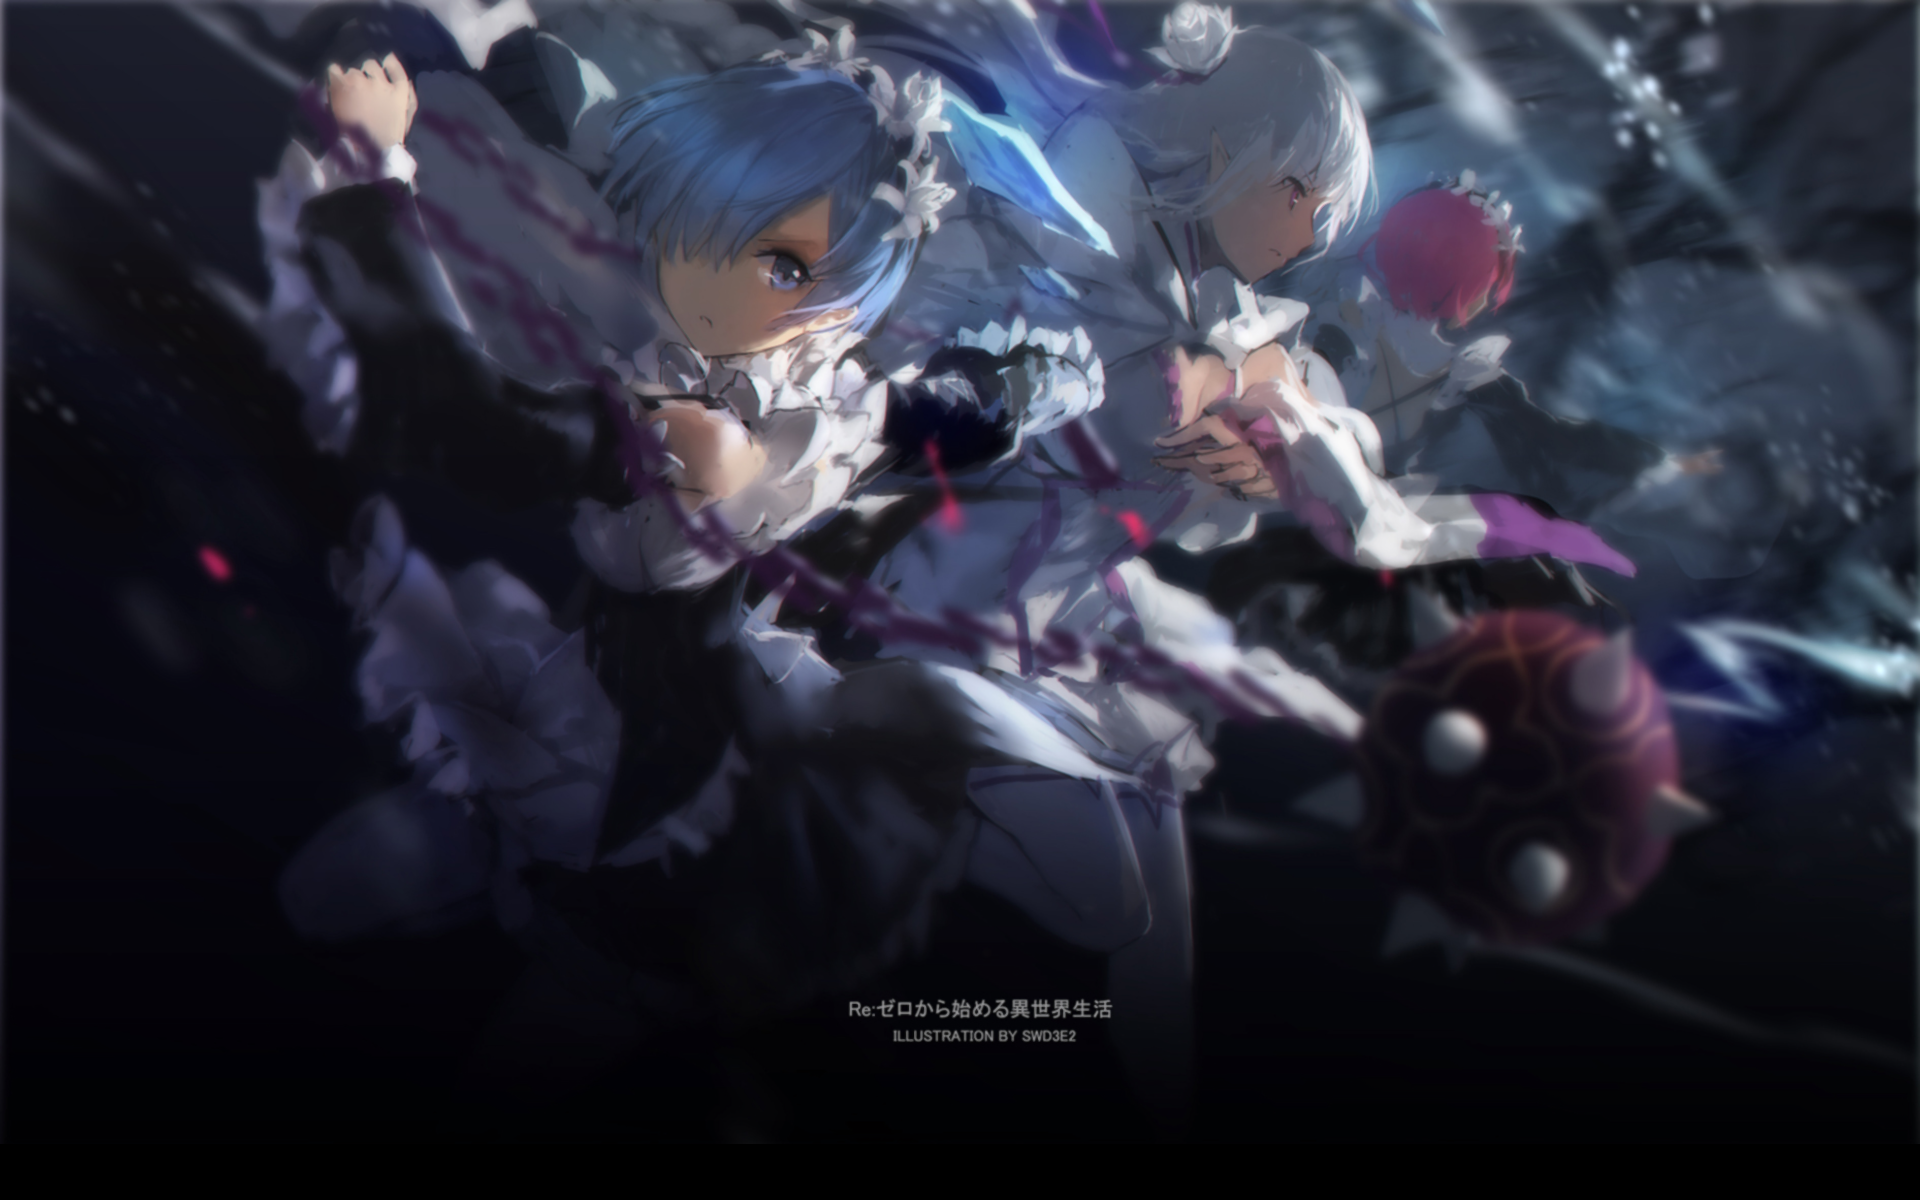 Anime Wallpapers Re:Zero kara Hajimeru Isekai Seikatsu HD 4K Download For Mobile iPhone & PC